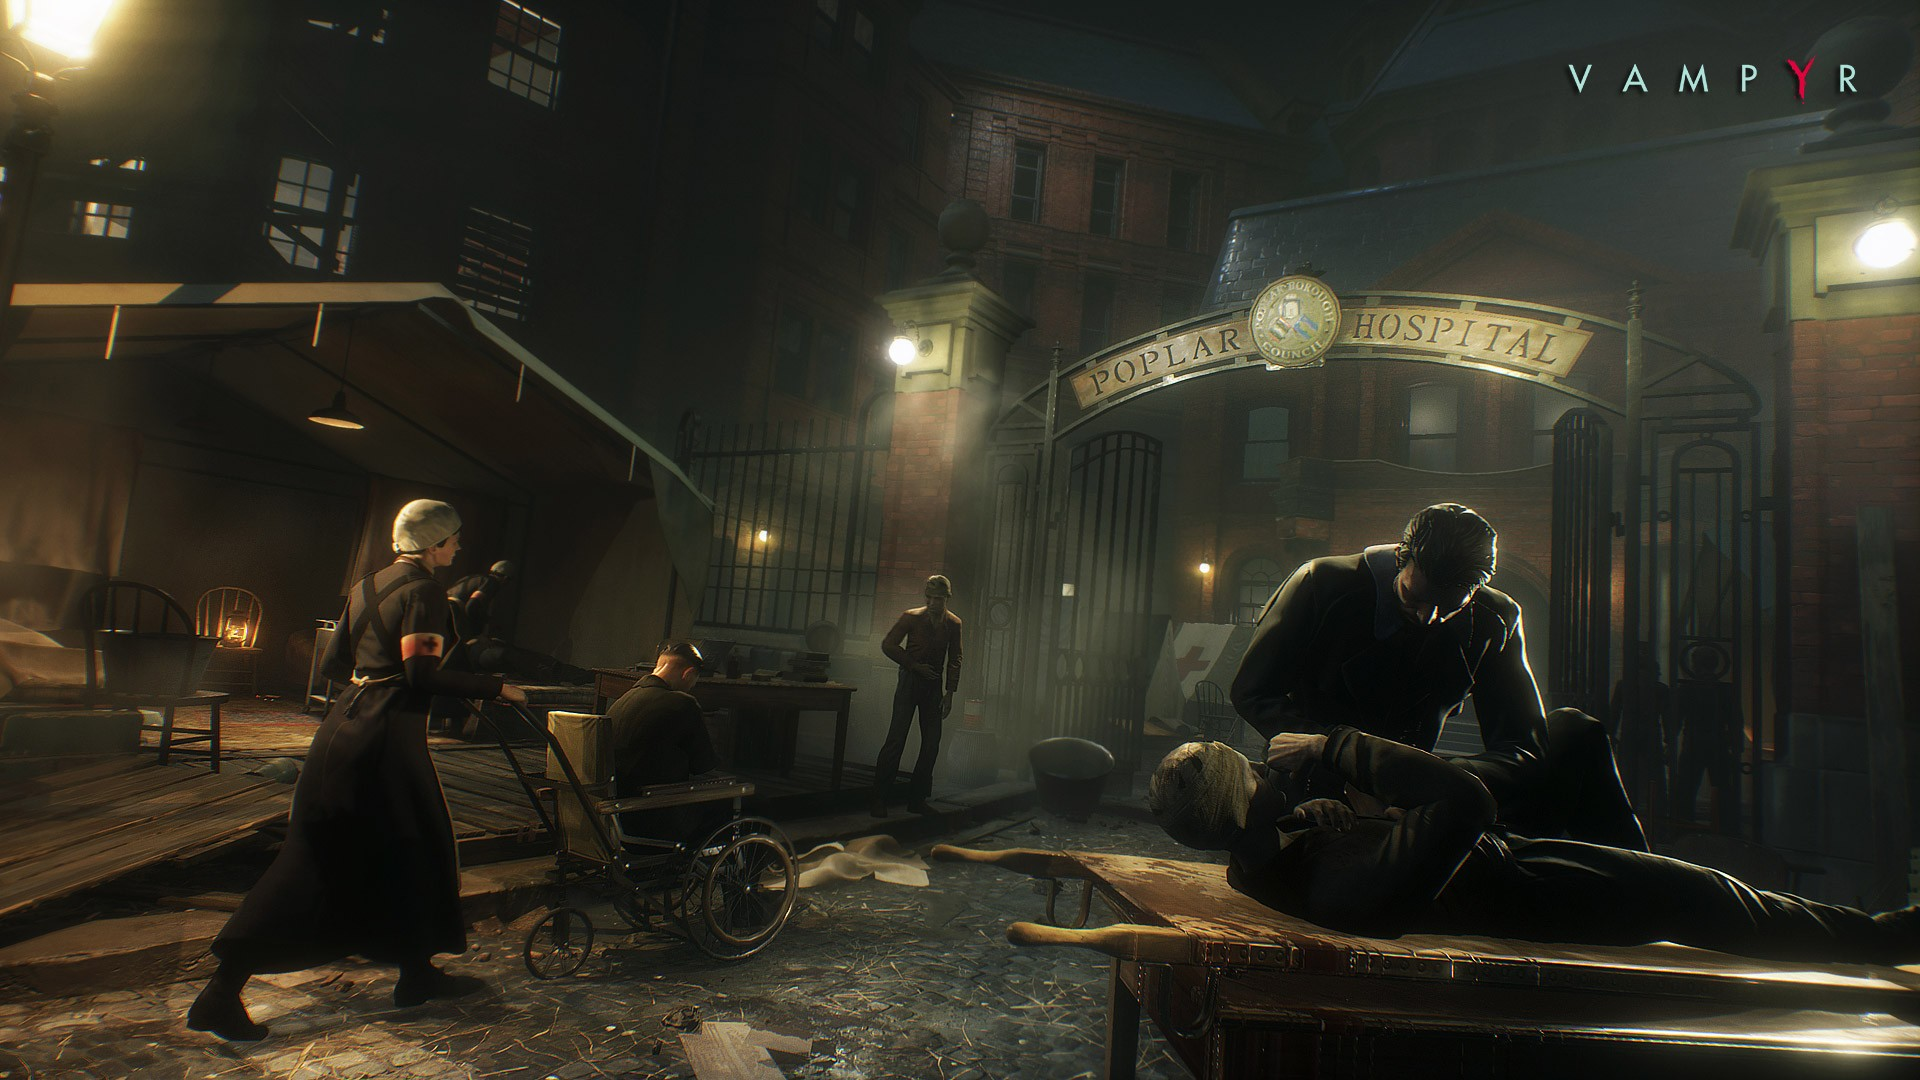 Vampyr 2018 PS4, PSP Android APK ISO Download Free